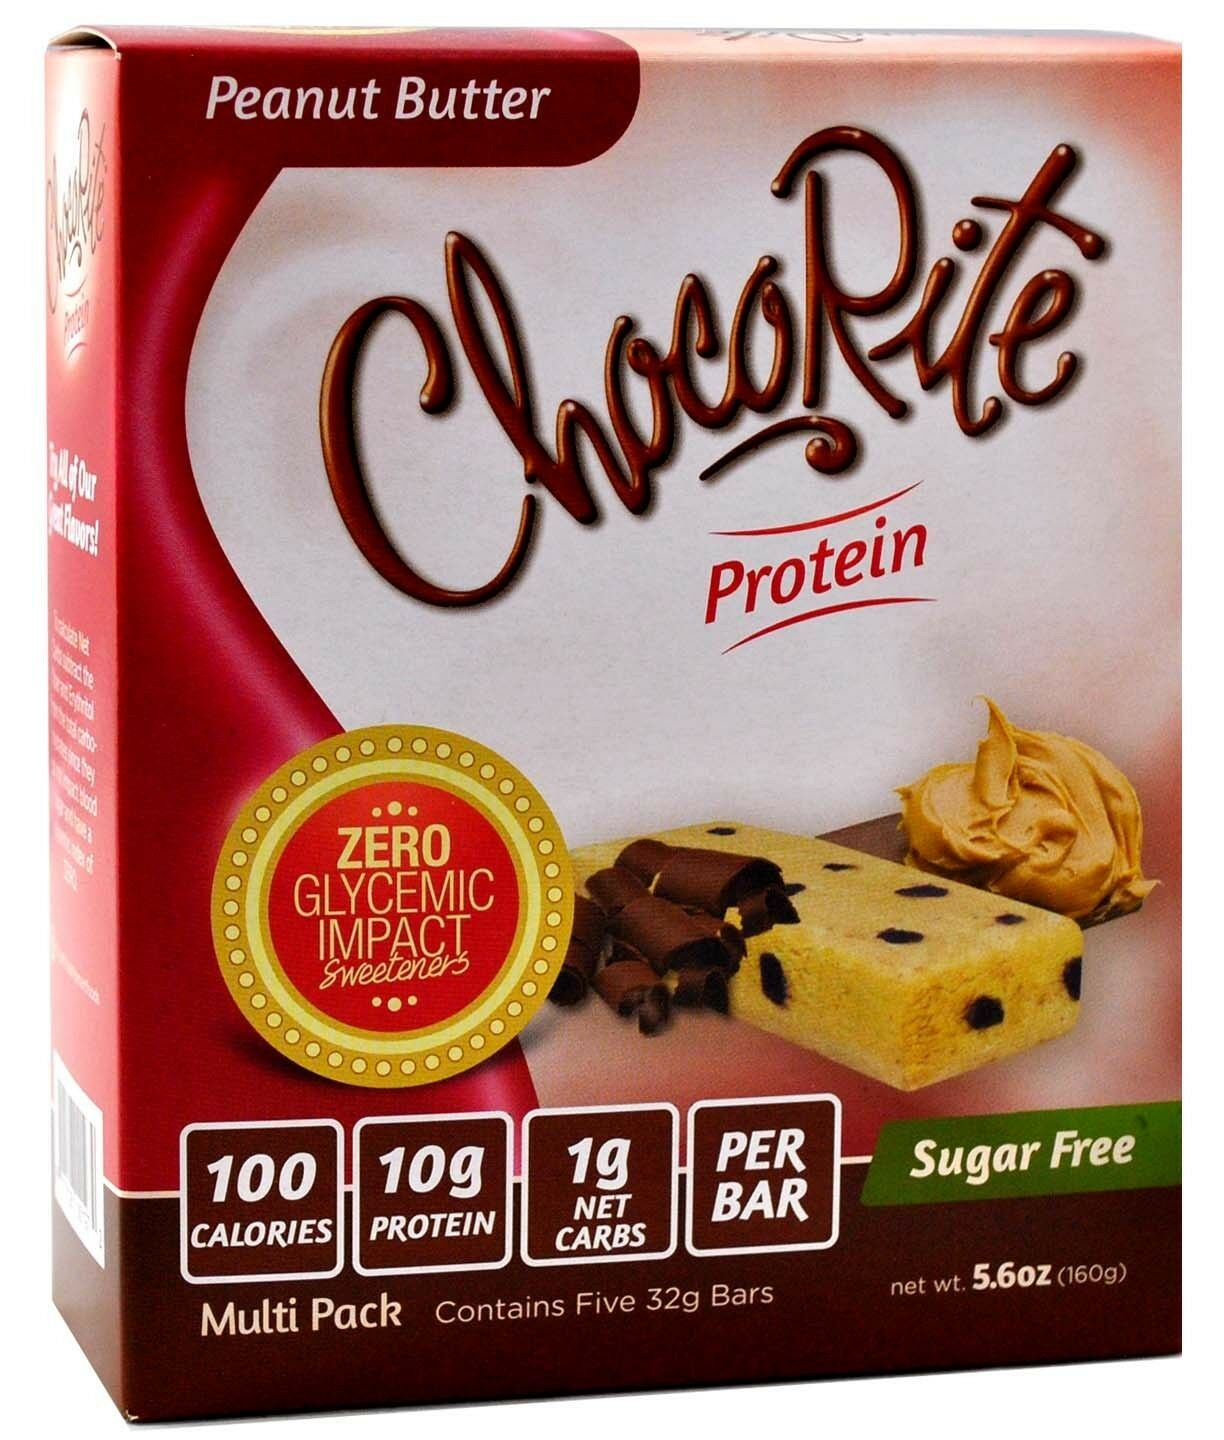 ChocoRite – Peanut Butter High Protein Bars Low Calorie, 5ct